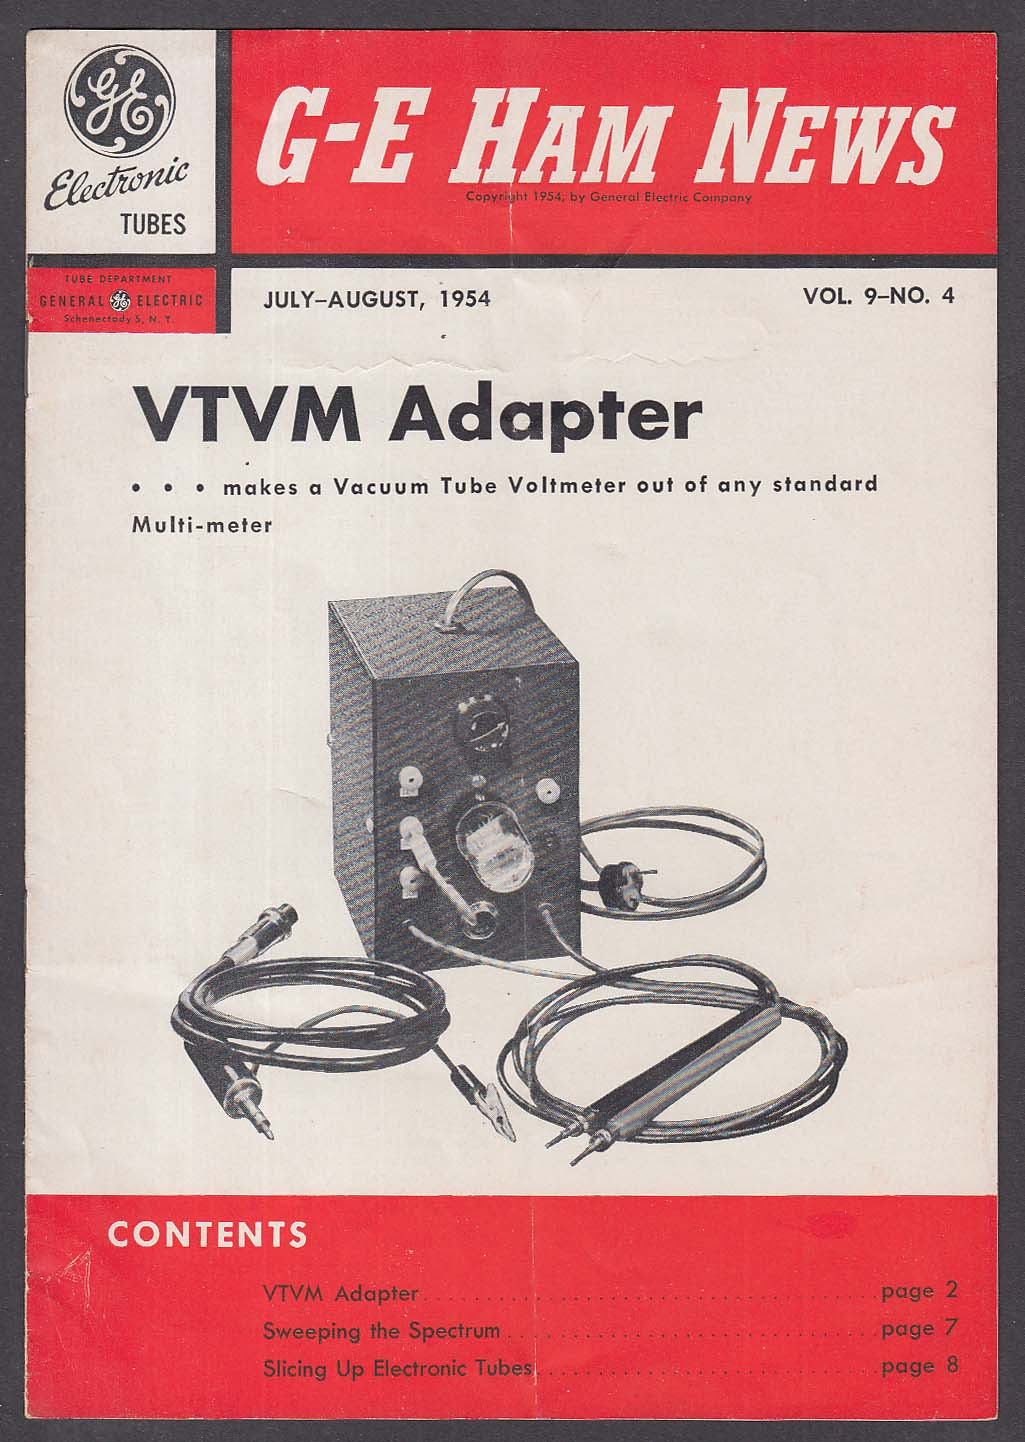 General Electric HAM NEWS Vol 9 #4 VTVM Adapter + 7-8 1954